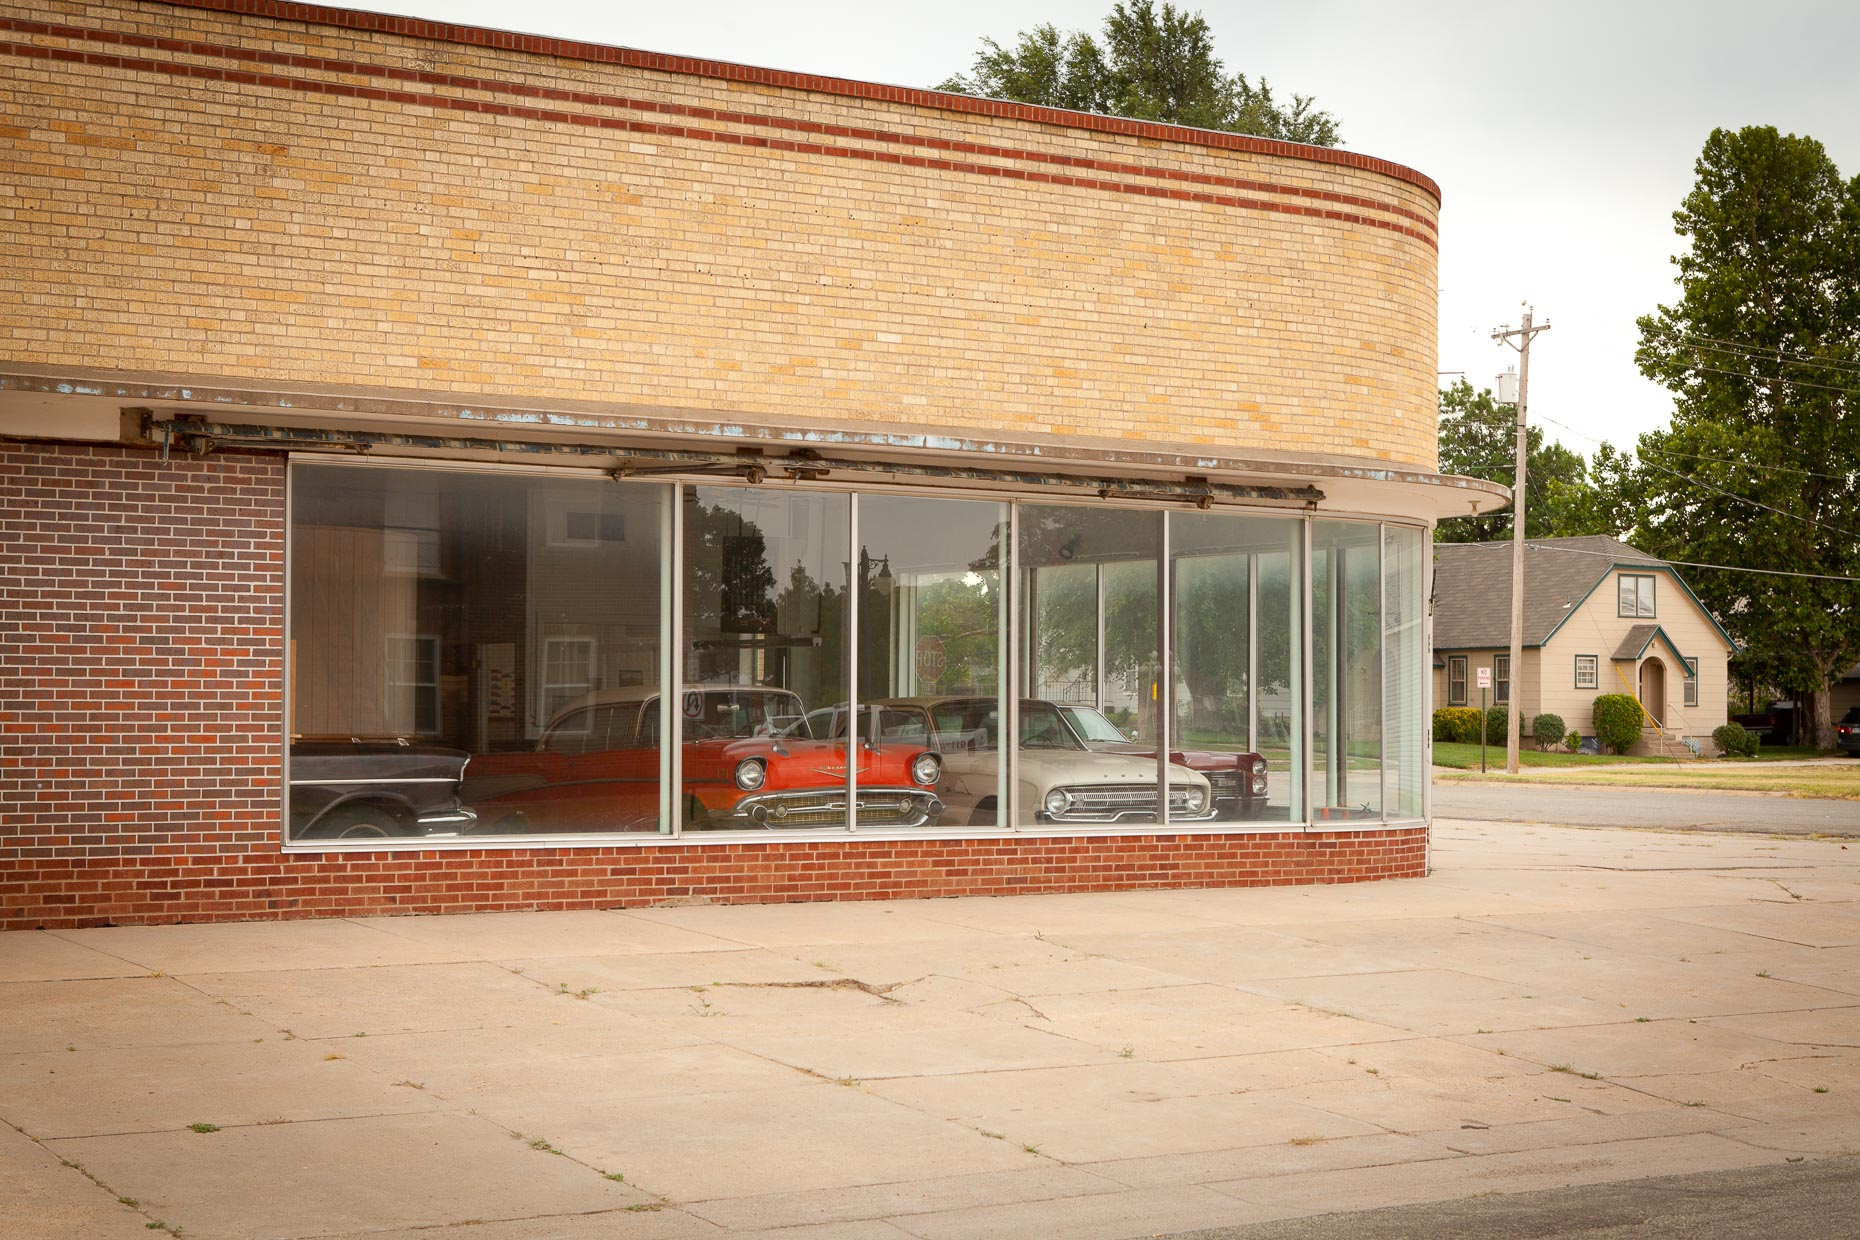 Cars in brick building showroom window by David Zaitz